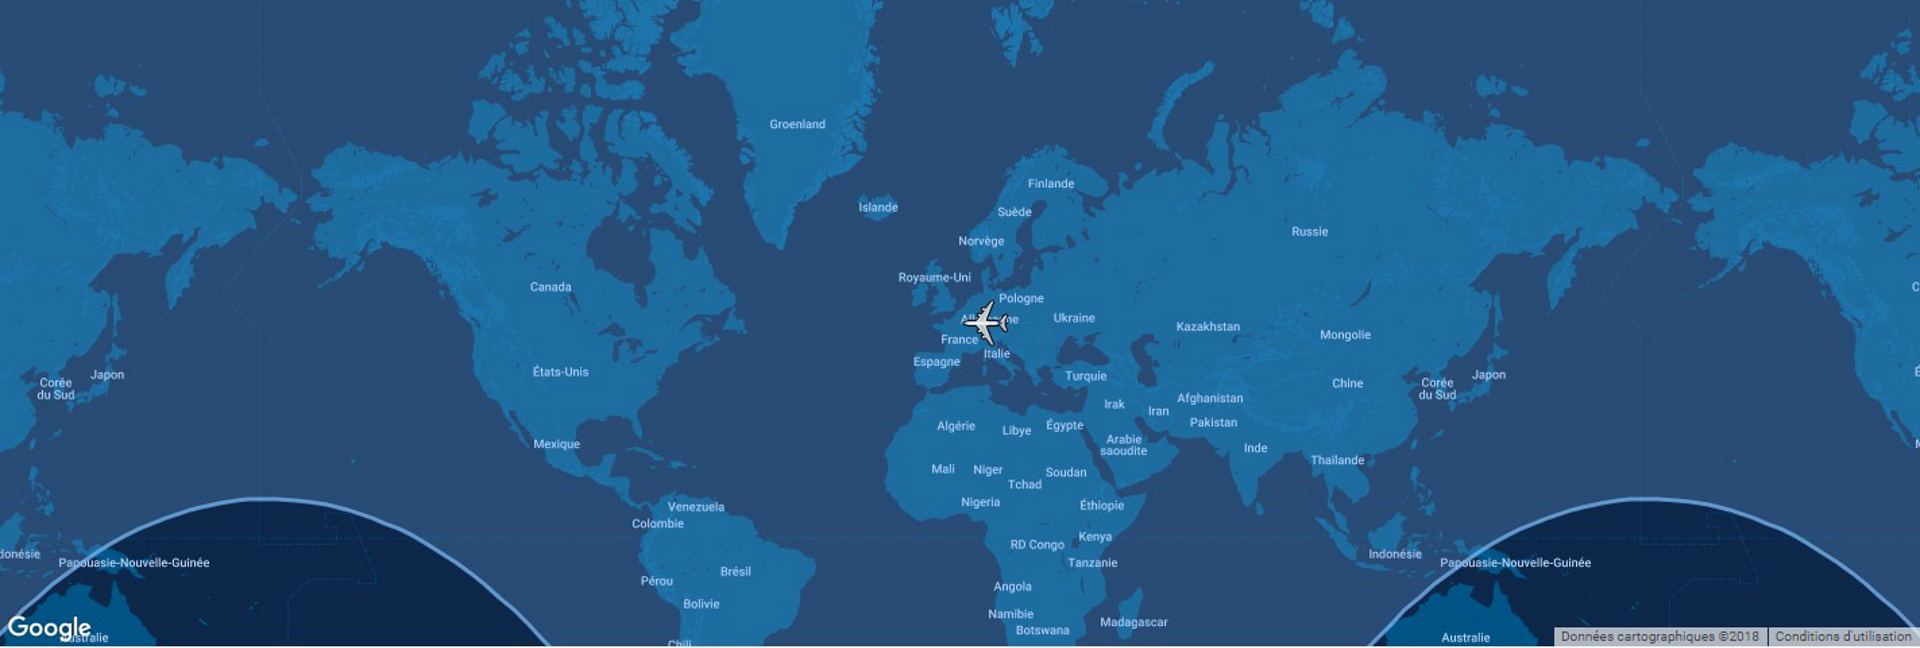 The typical range for Airbus' A330-200 commercial aircraft is shown in this diagram, which includes a global map.